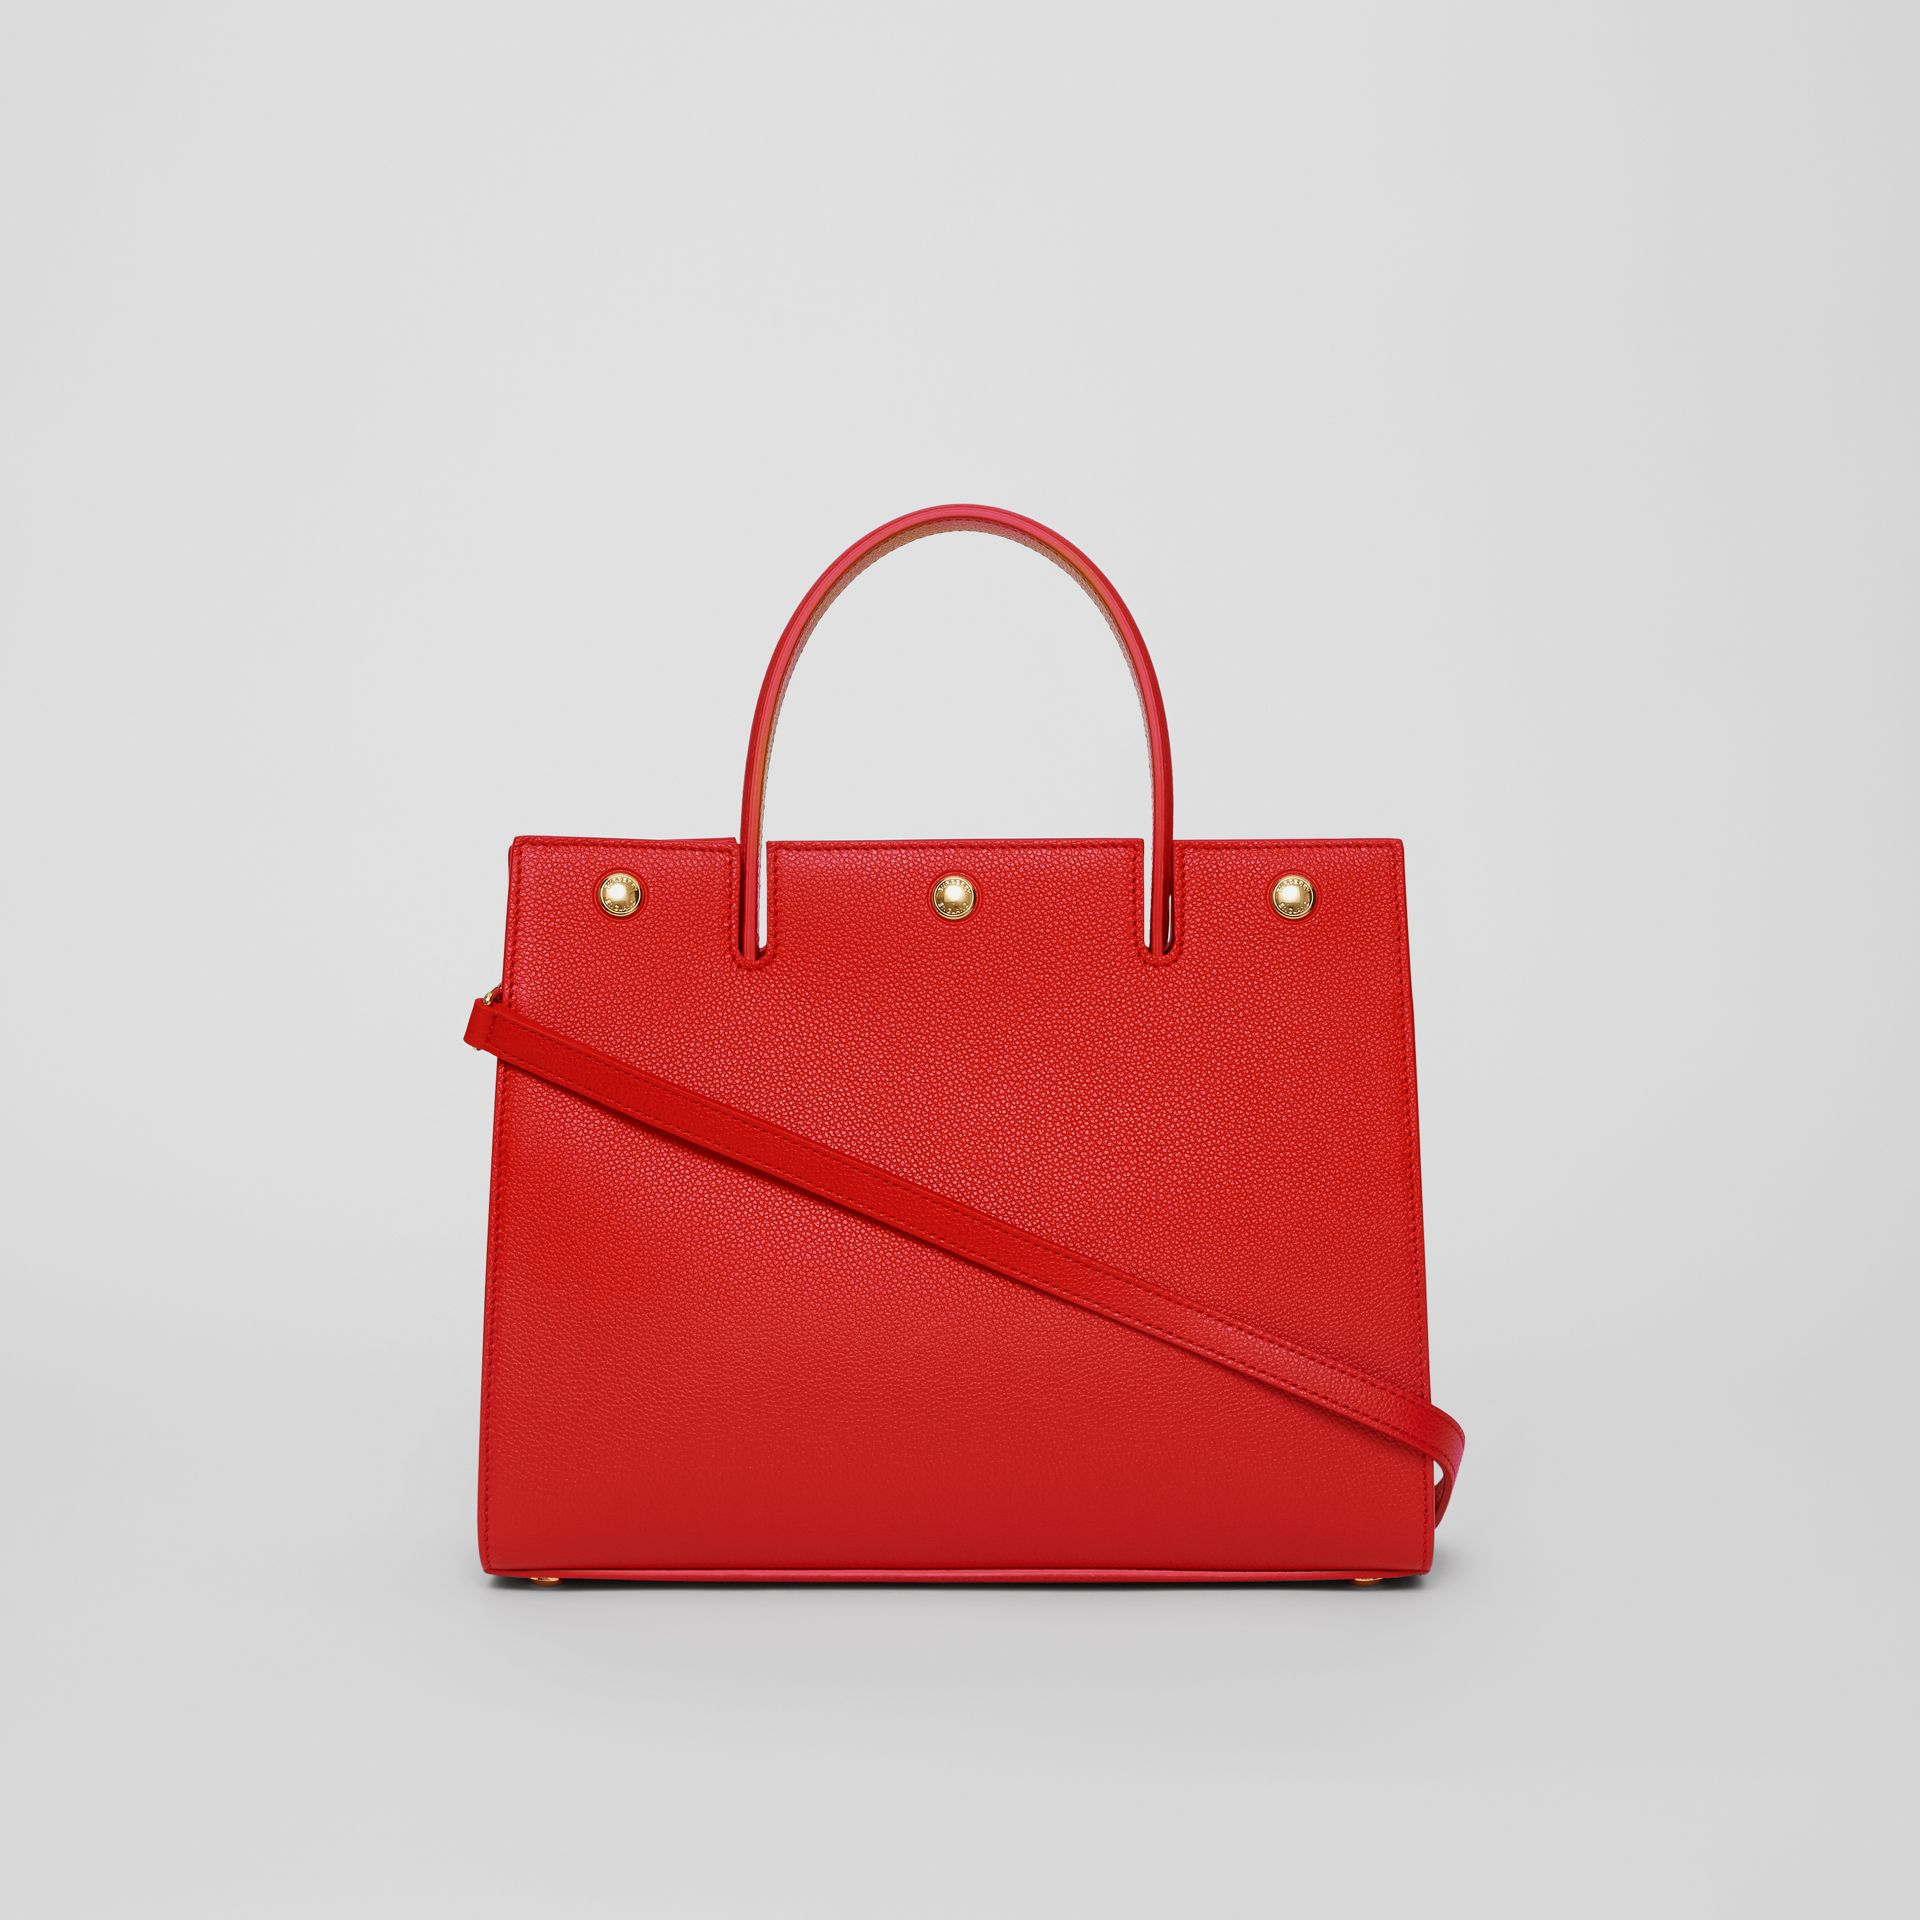 Small Leather Title Bag in Bright Red - Women | Burberry - gallery image 5